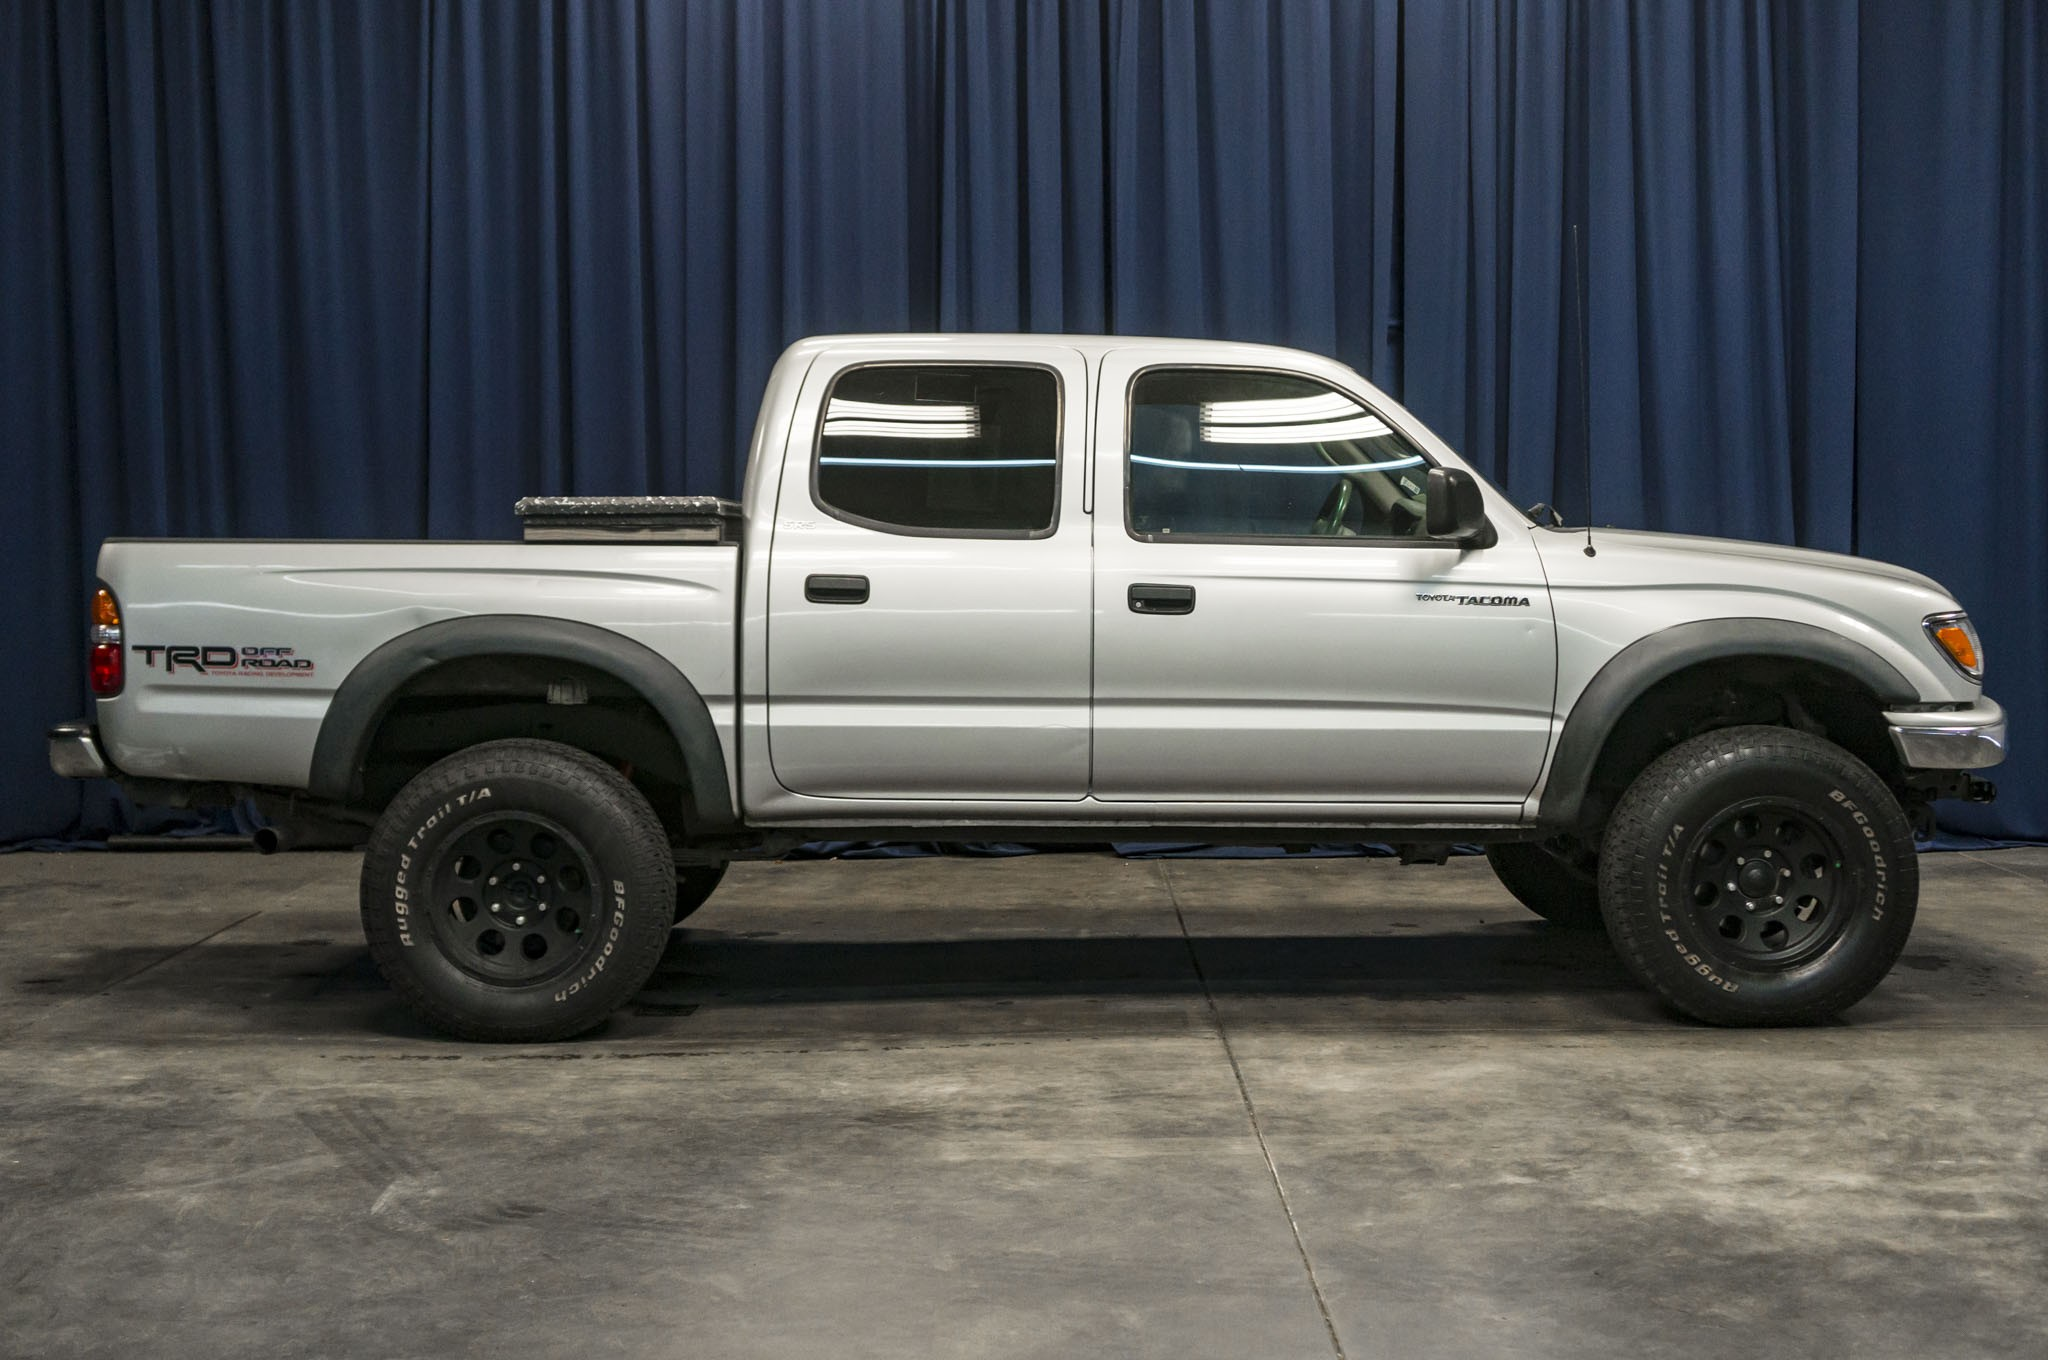 Used Lifted 2002 Toyota Tacoma TRD SR5 4x4 Truck For Sale ...